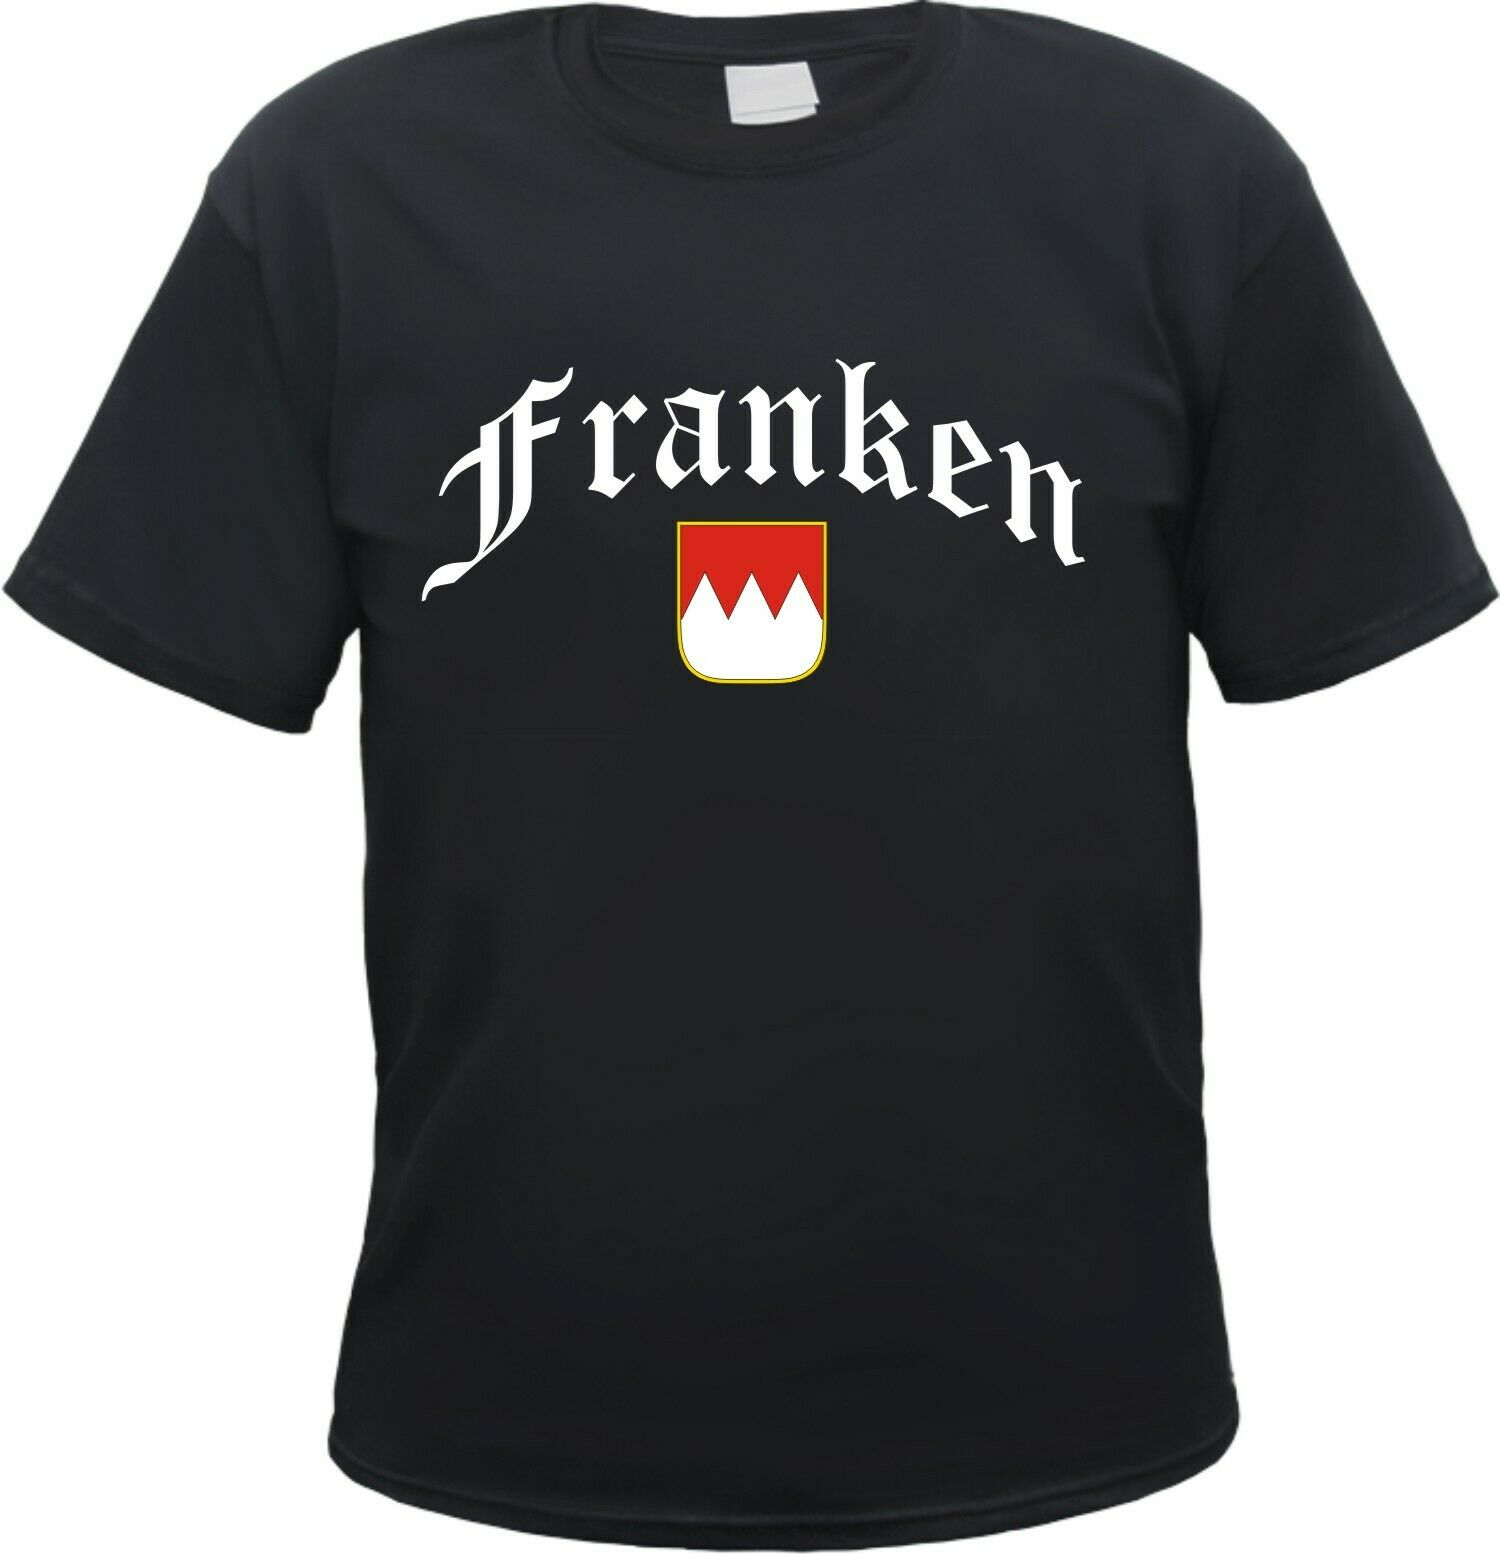 Franken T-Shirt with Crest-Franc country, Fallen, Franc Song, Nuremberg- show original title image